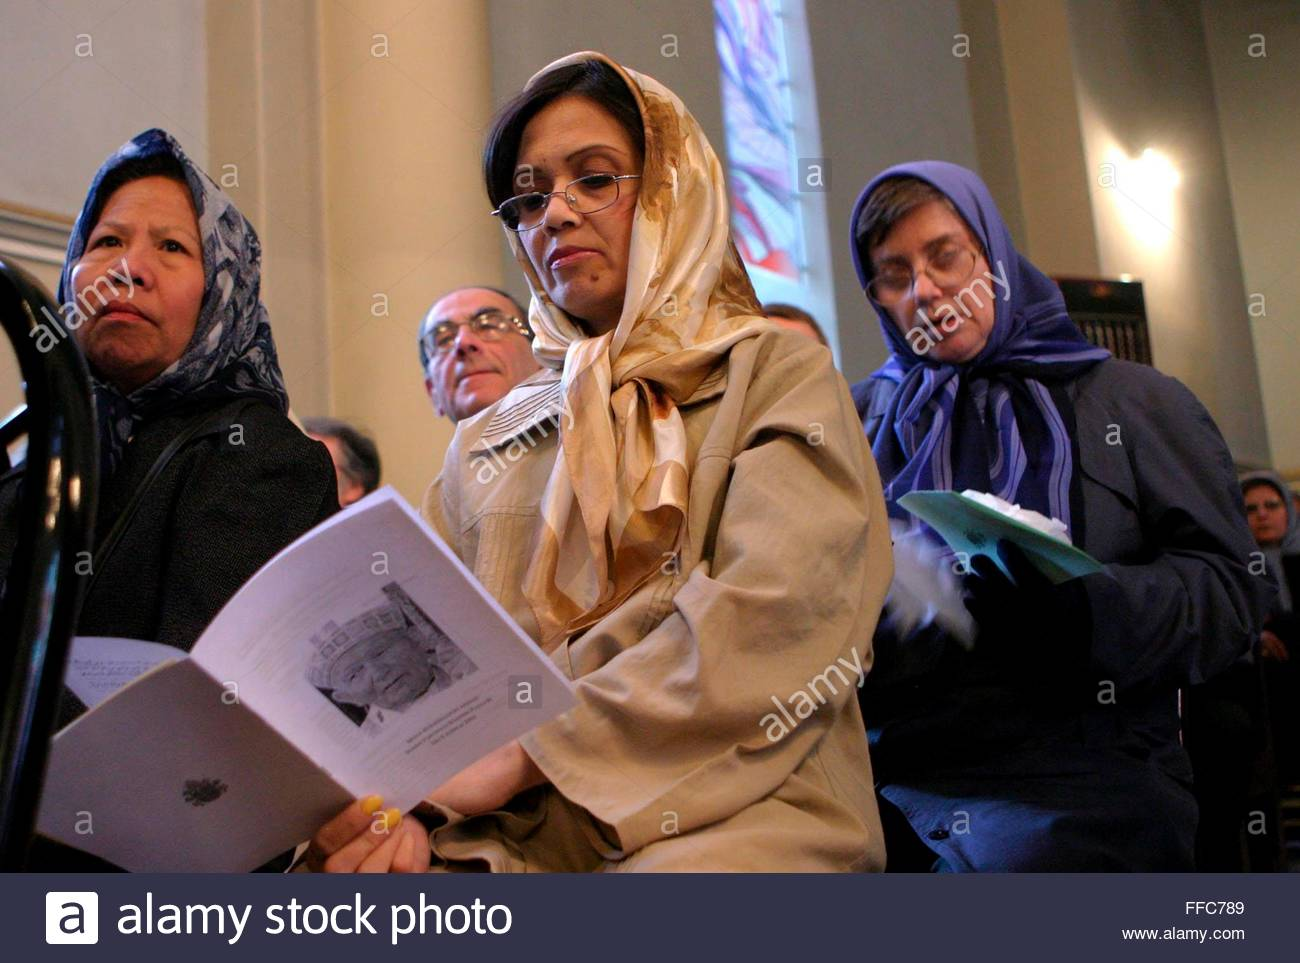 http://c8.alamy.com/comp/FFC789/epa000409039-iranian-catholic-women-pray-in-yussef-church-in-tehran-FFC789.jpg